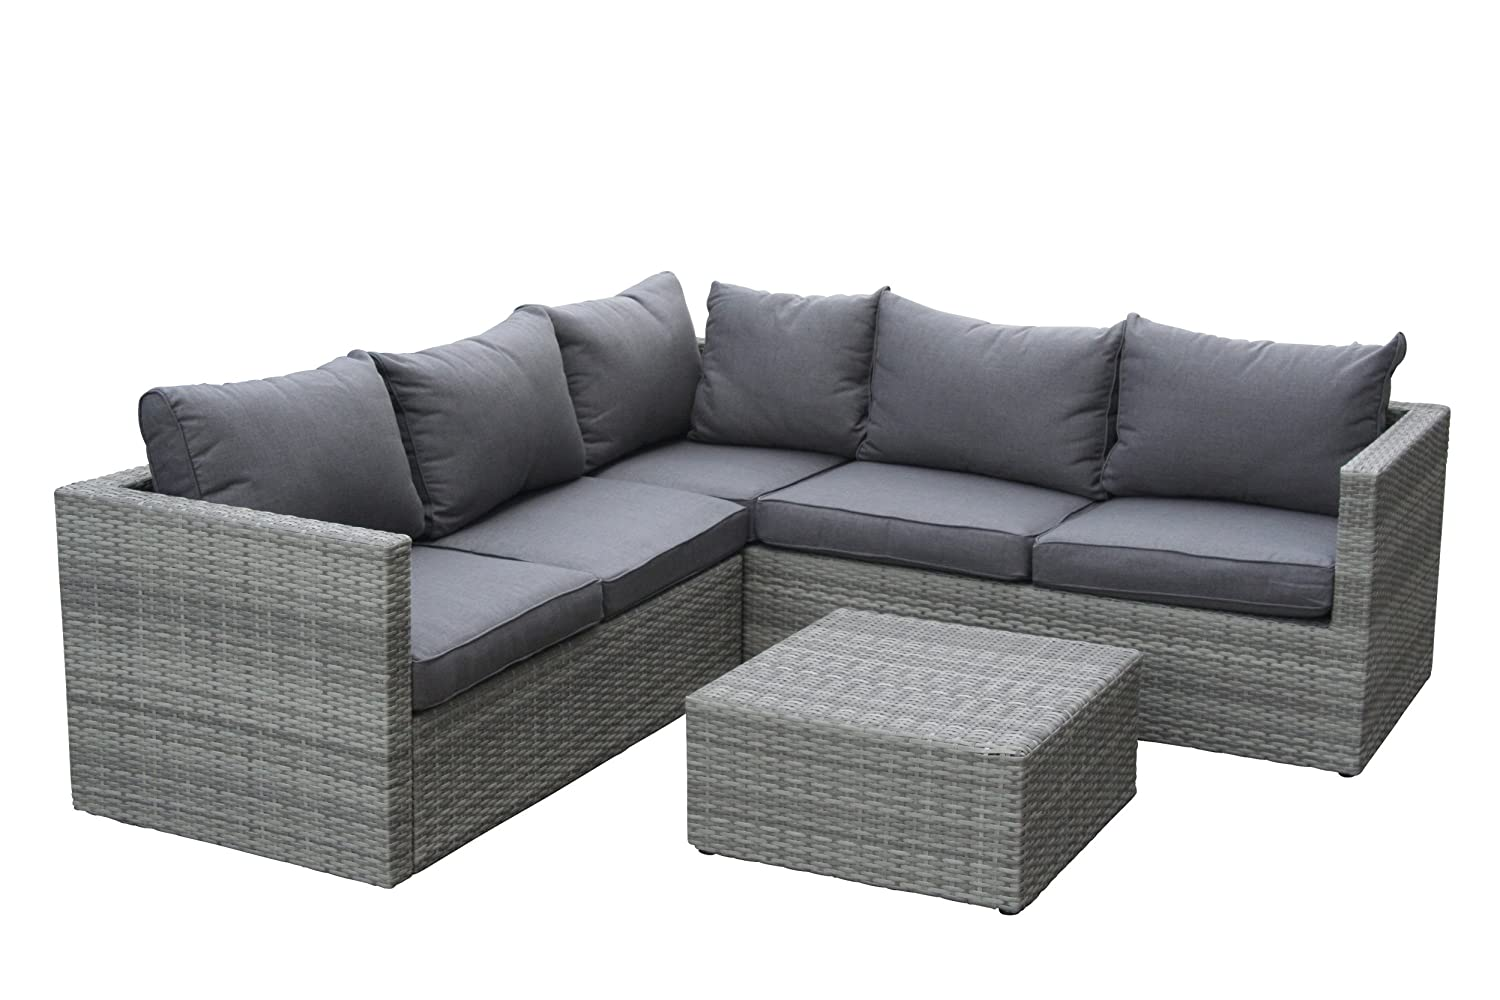 poly rattan sofa lounge set malta grau gartenm bel set terrassen outdoor sitzgruppe loungeecke. Black Bedroom Furniture Sets. Home Design Ideas